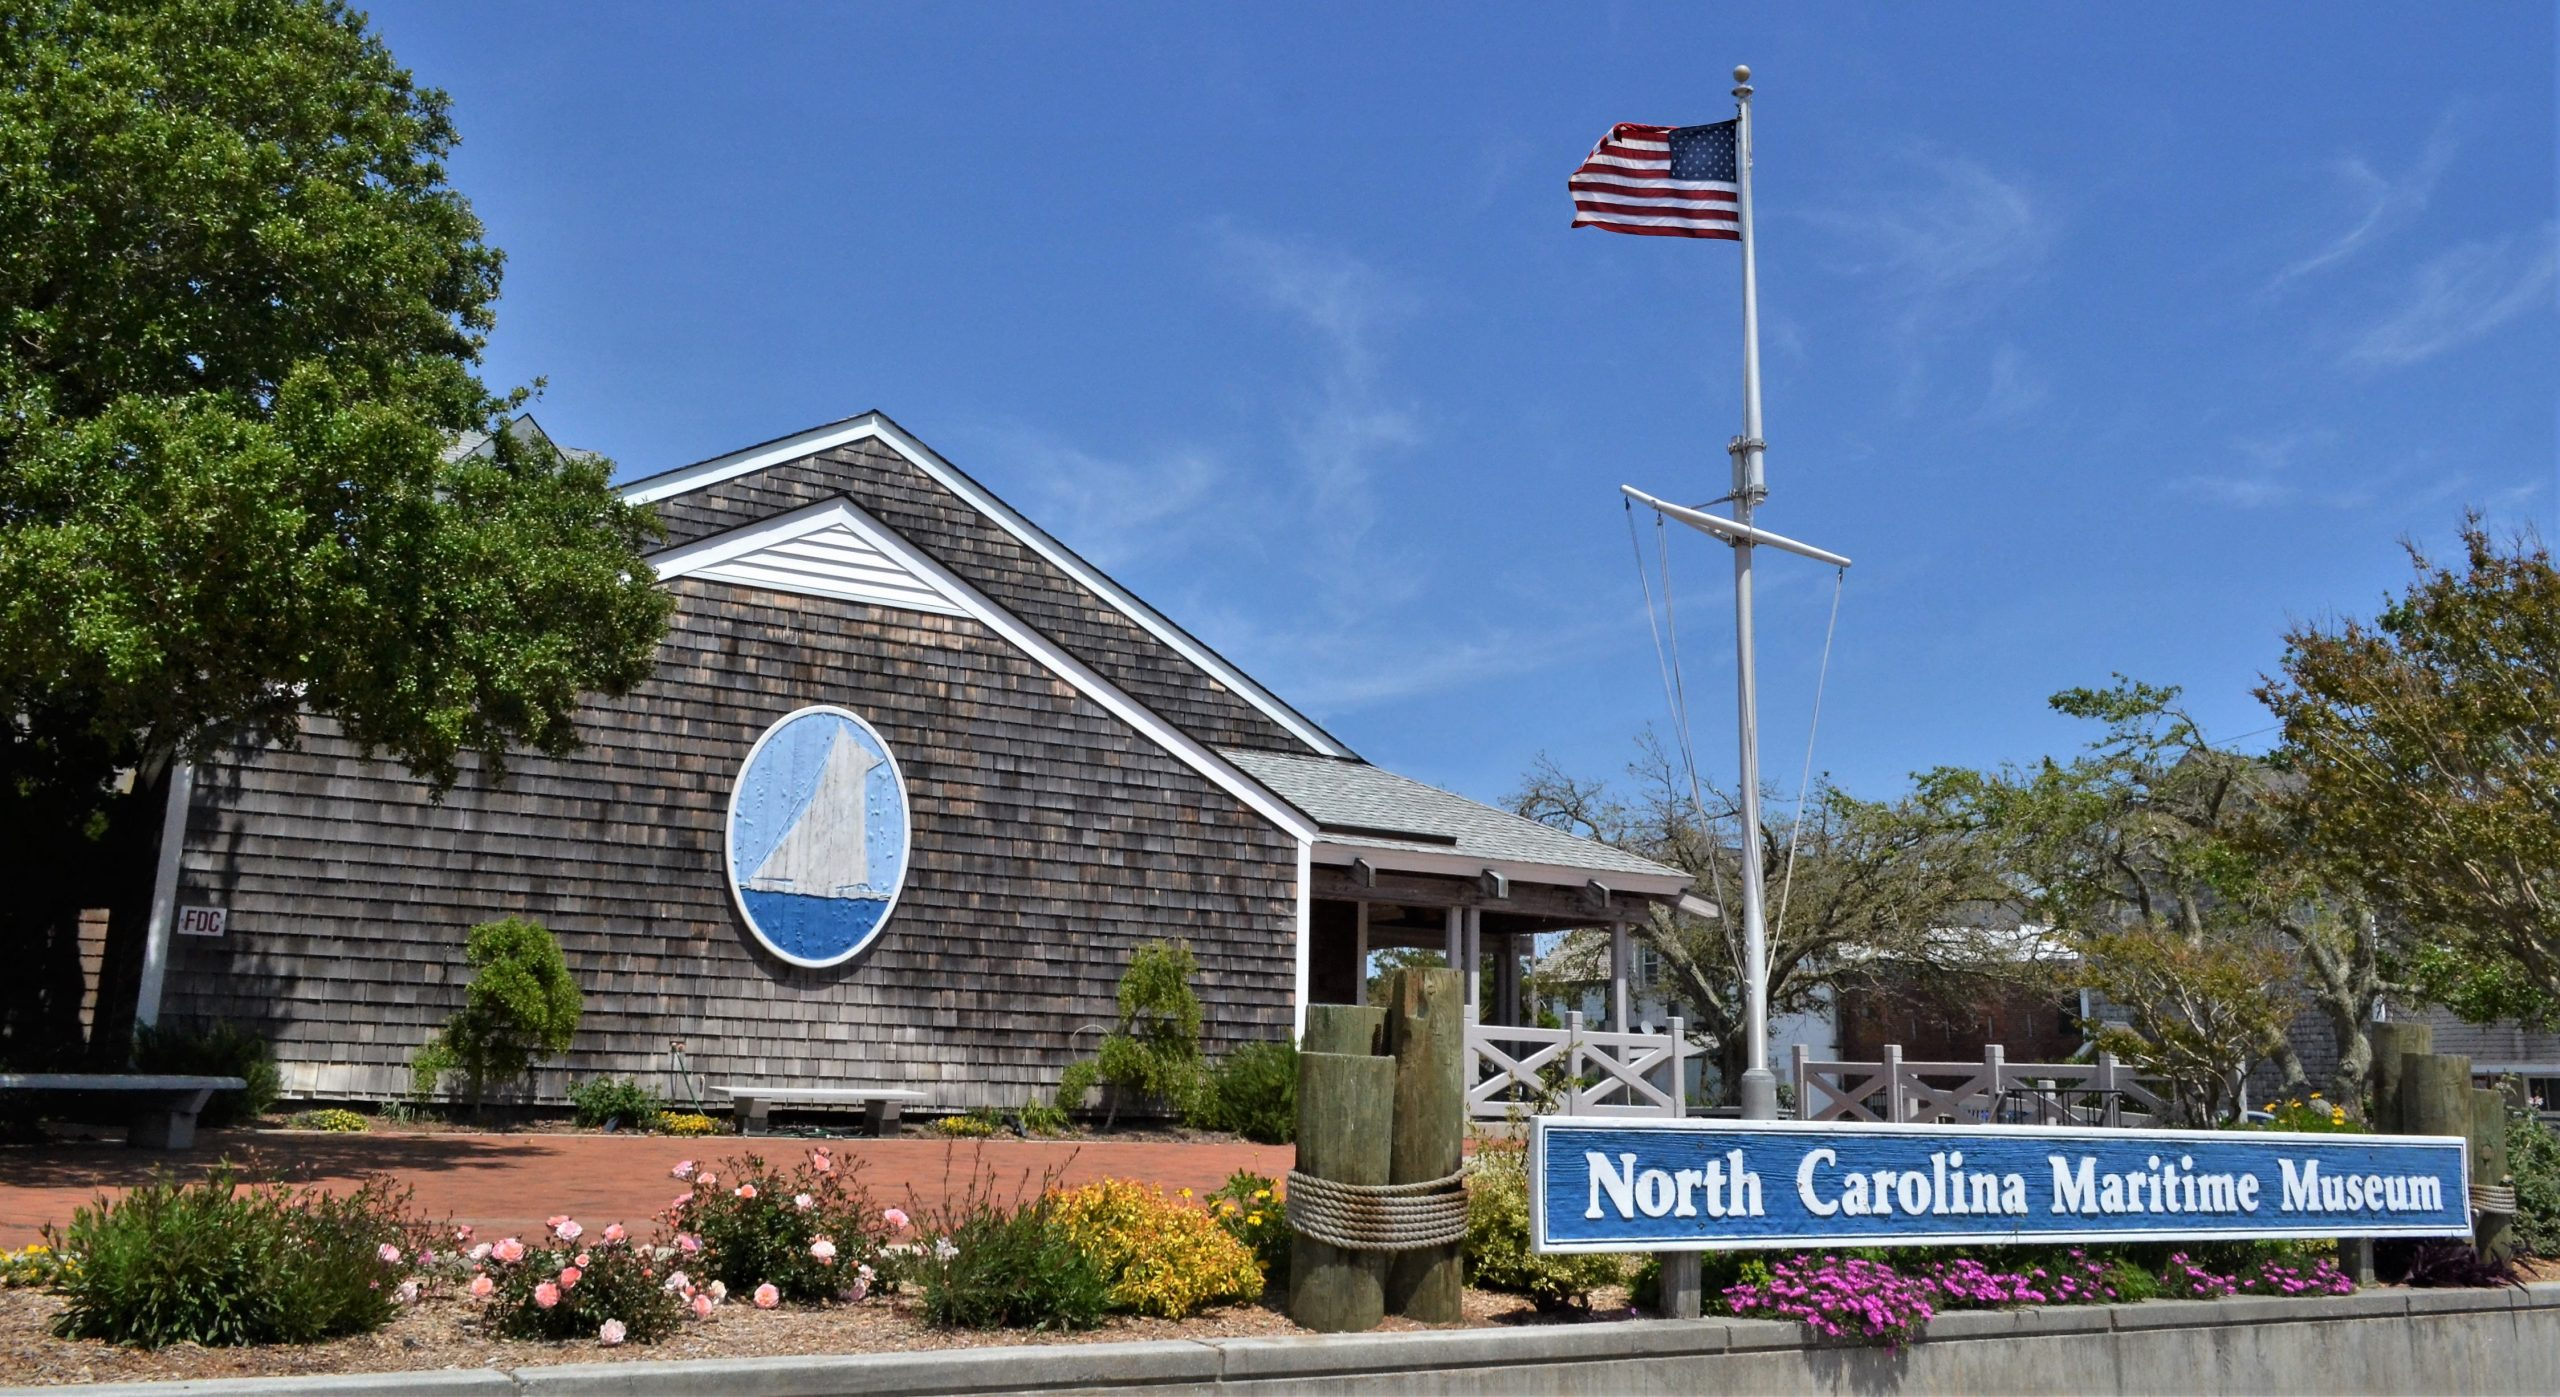 North Carolina Maritime Museum - Beaufort